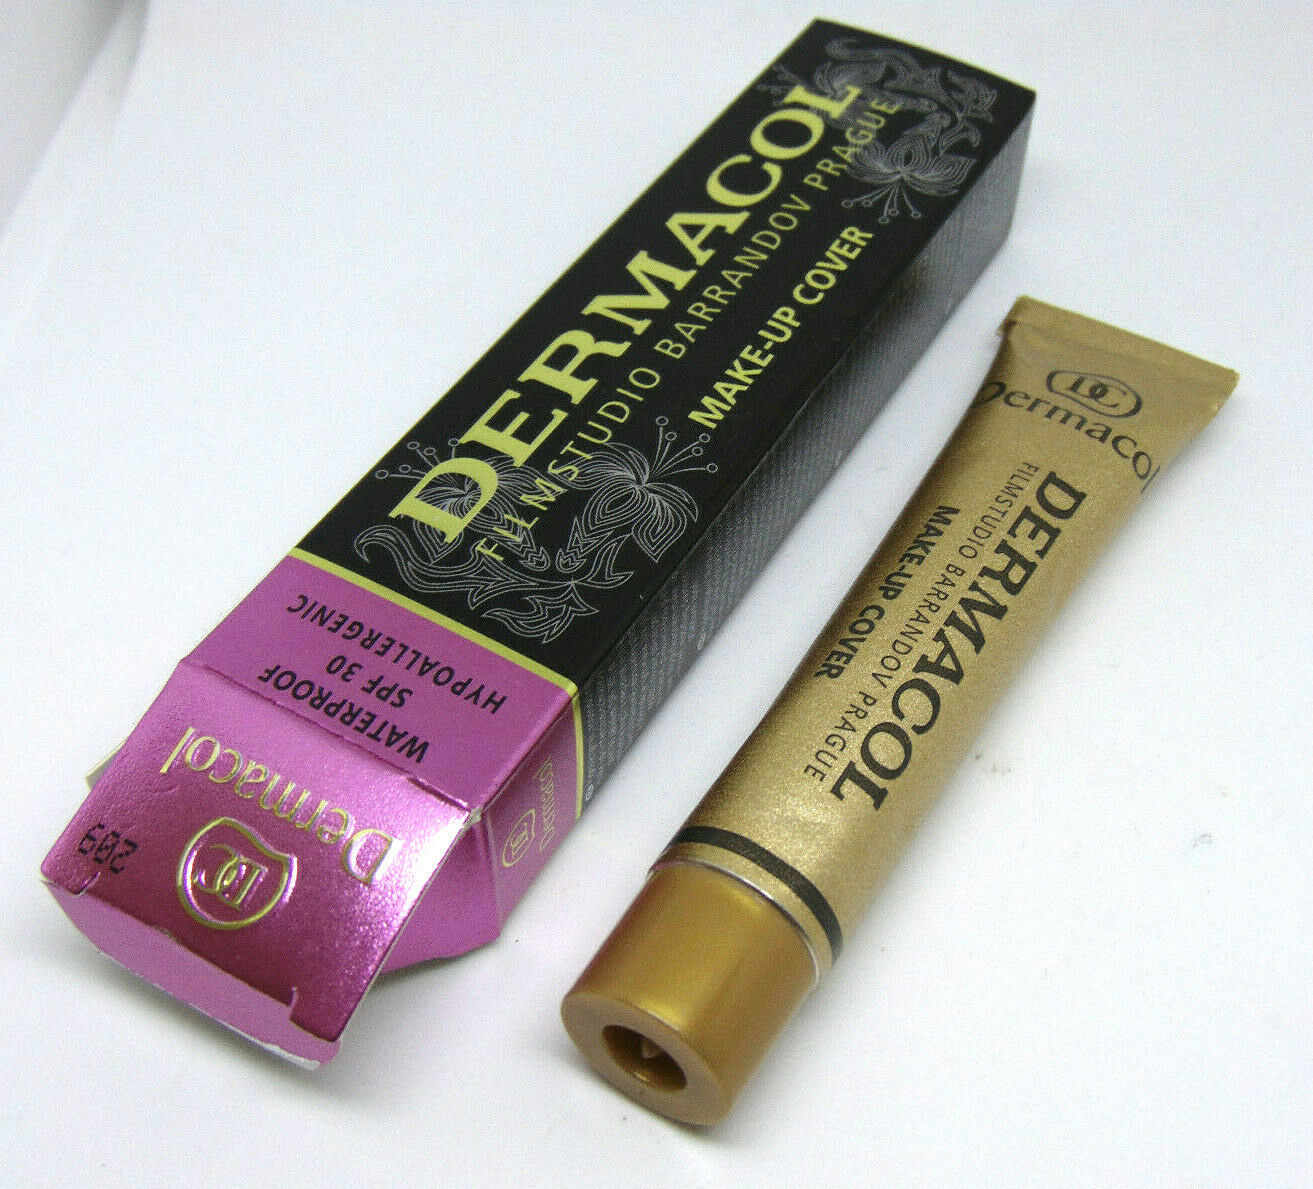 Primary image for DERMACOL Waterproof Make-Up Cover Spf30  No.209 1.0oz/30g NIB